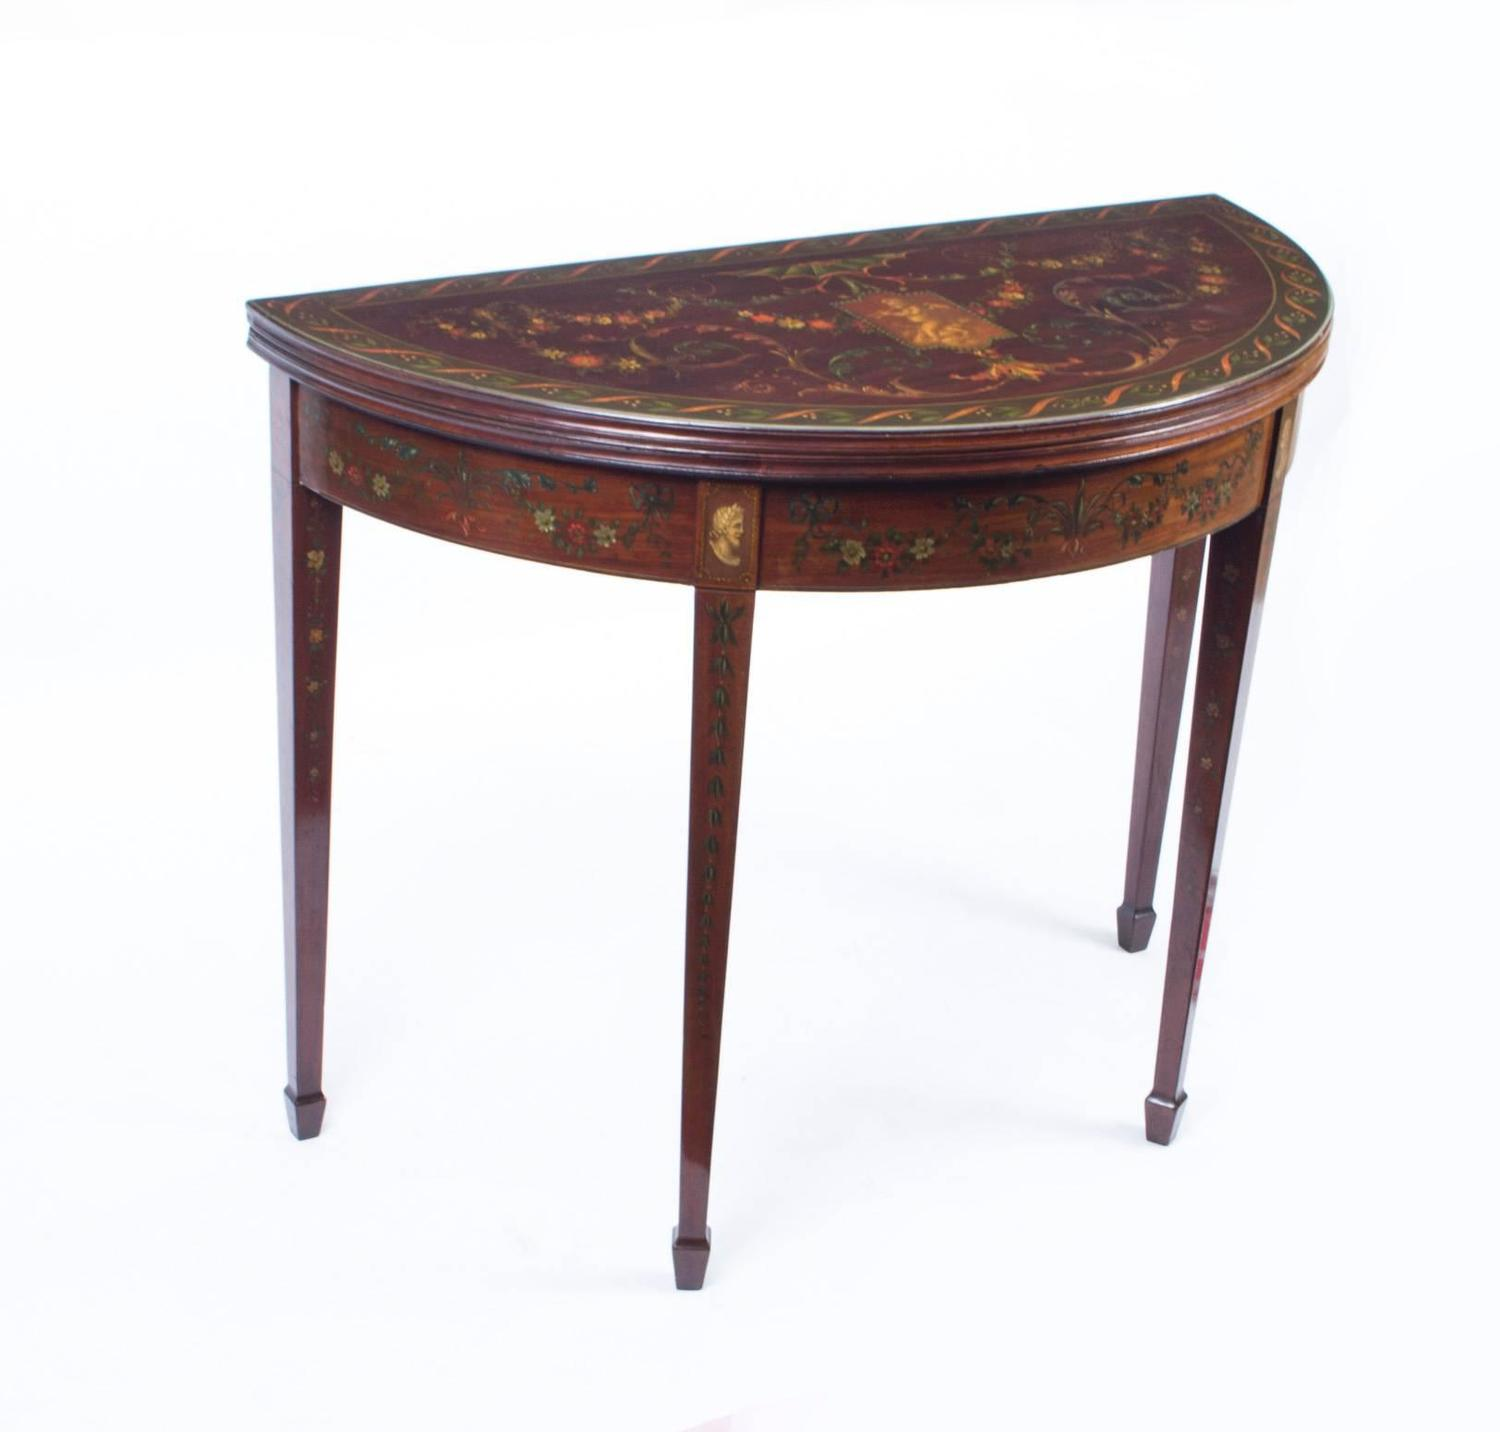 antique half moon card console table circa 1870 for sale at 1stdibs. Black Bedroom Furniture Sets. Home Design Ideas